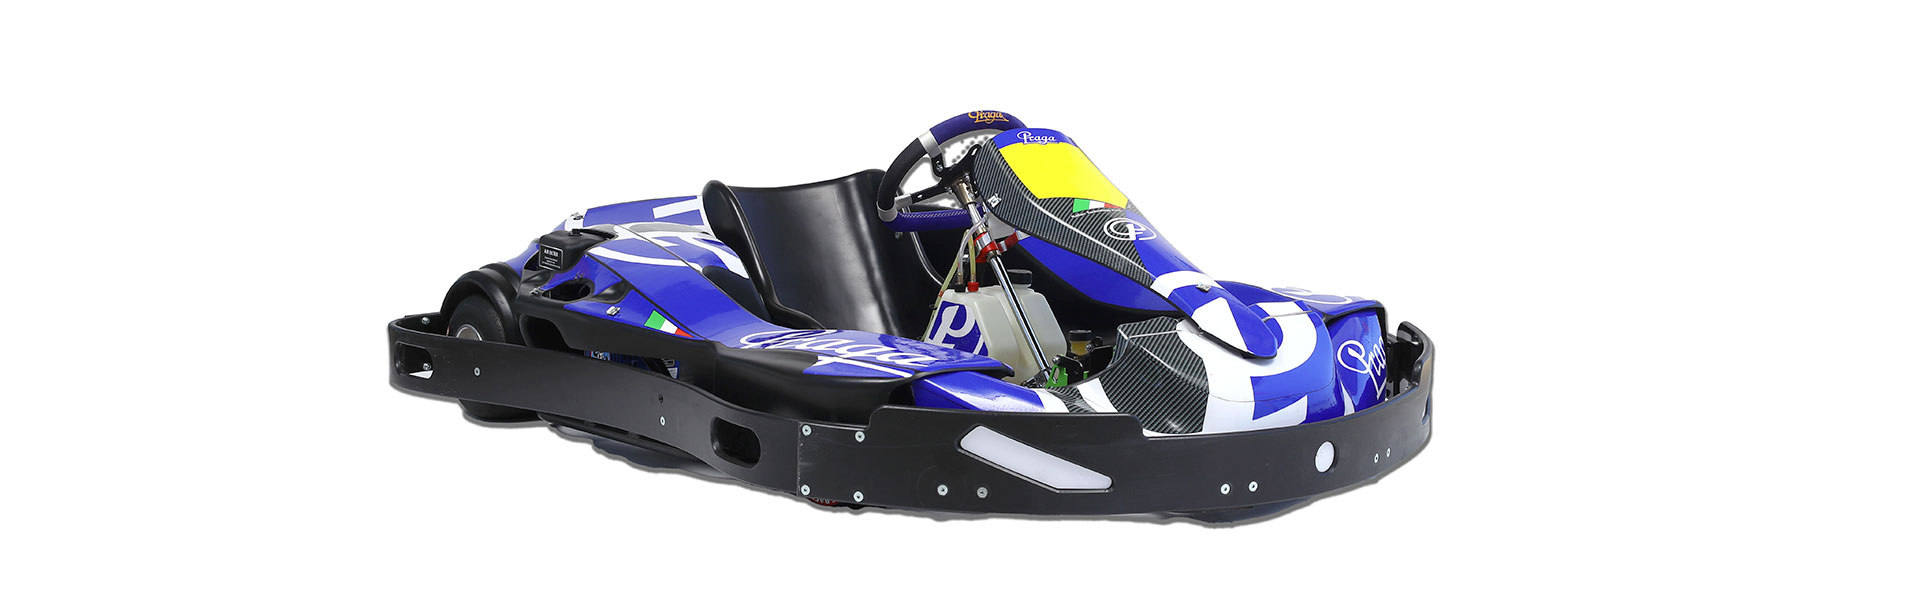 Race Line LIGHT: kart rental according to Praga Karts